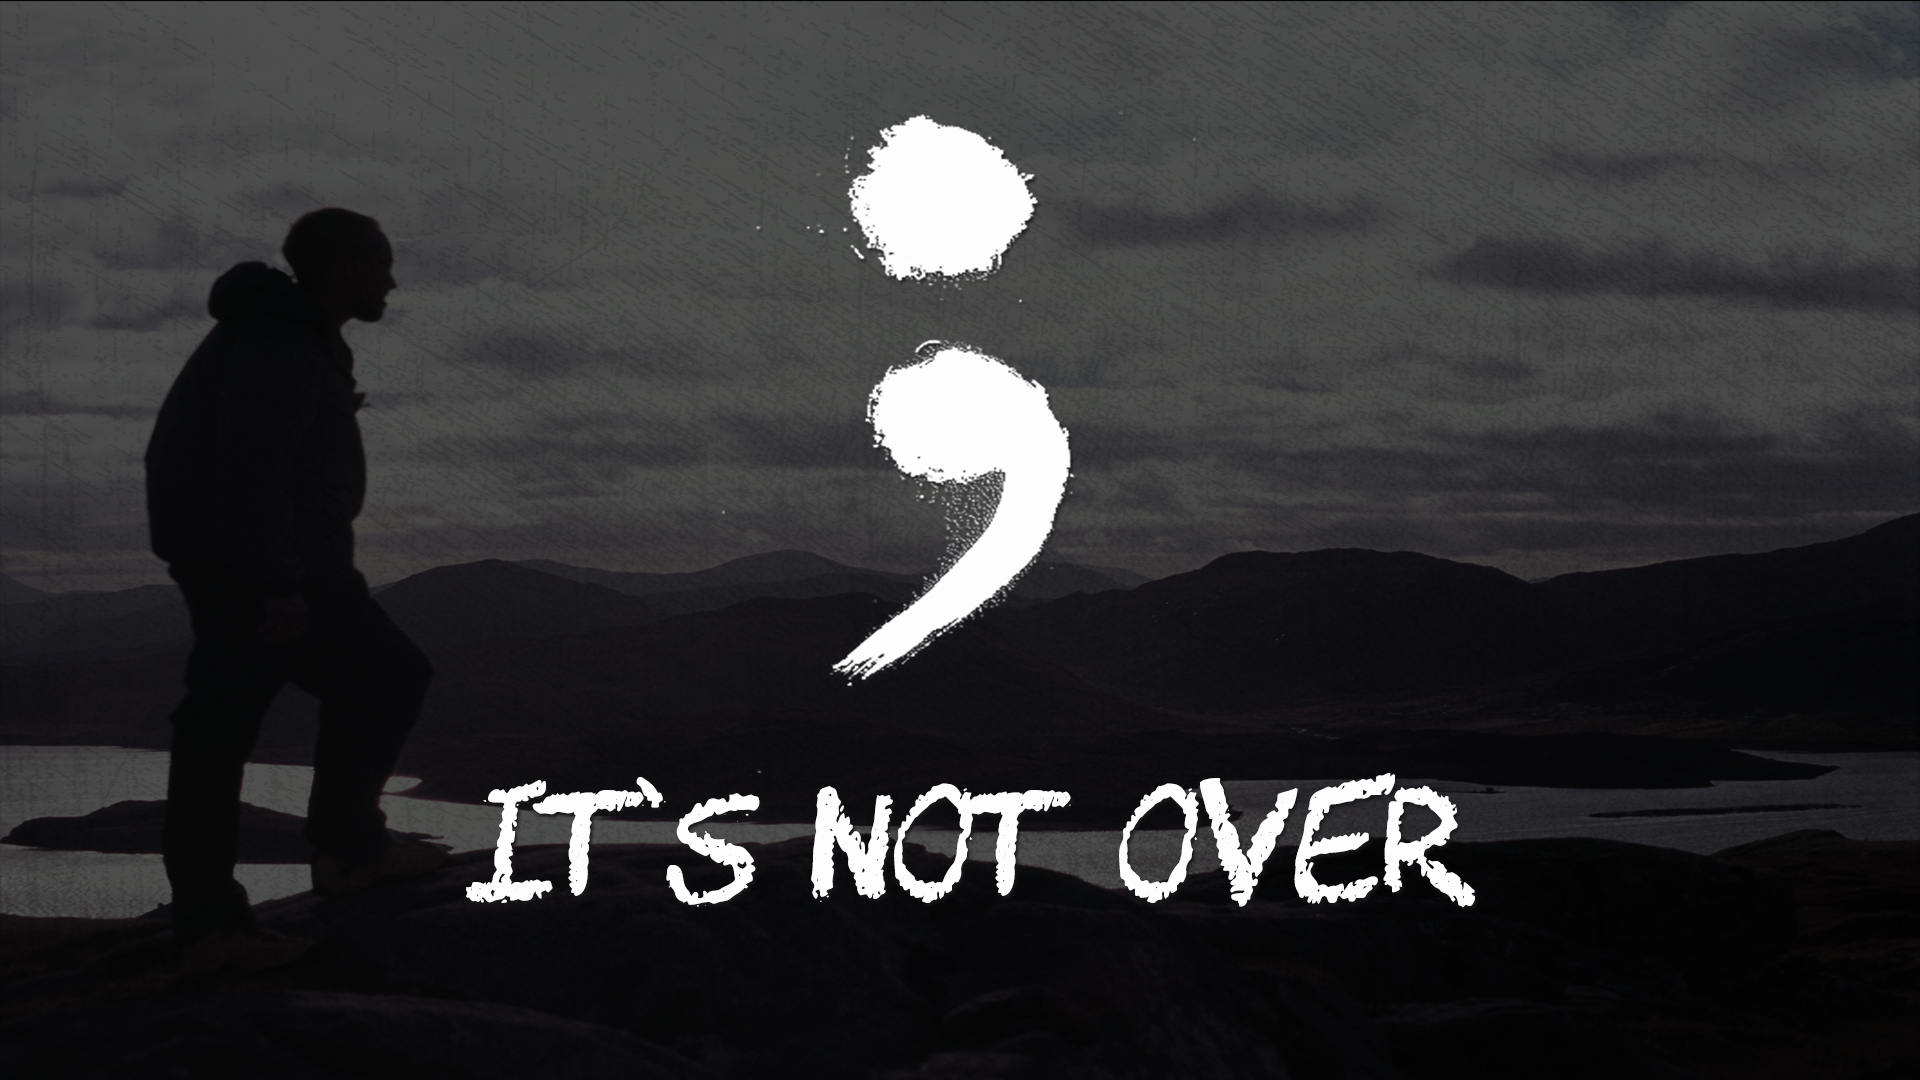 ; It's Not Over – Graphic – LG